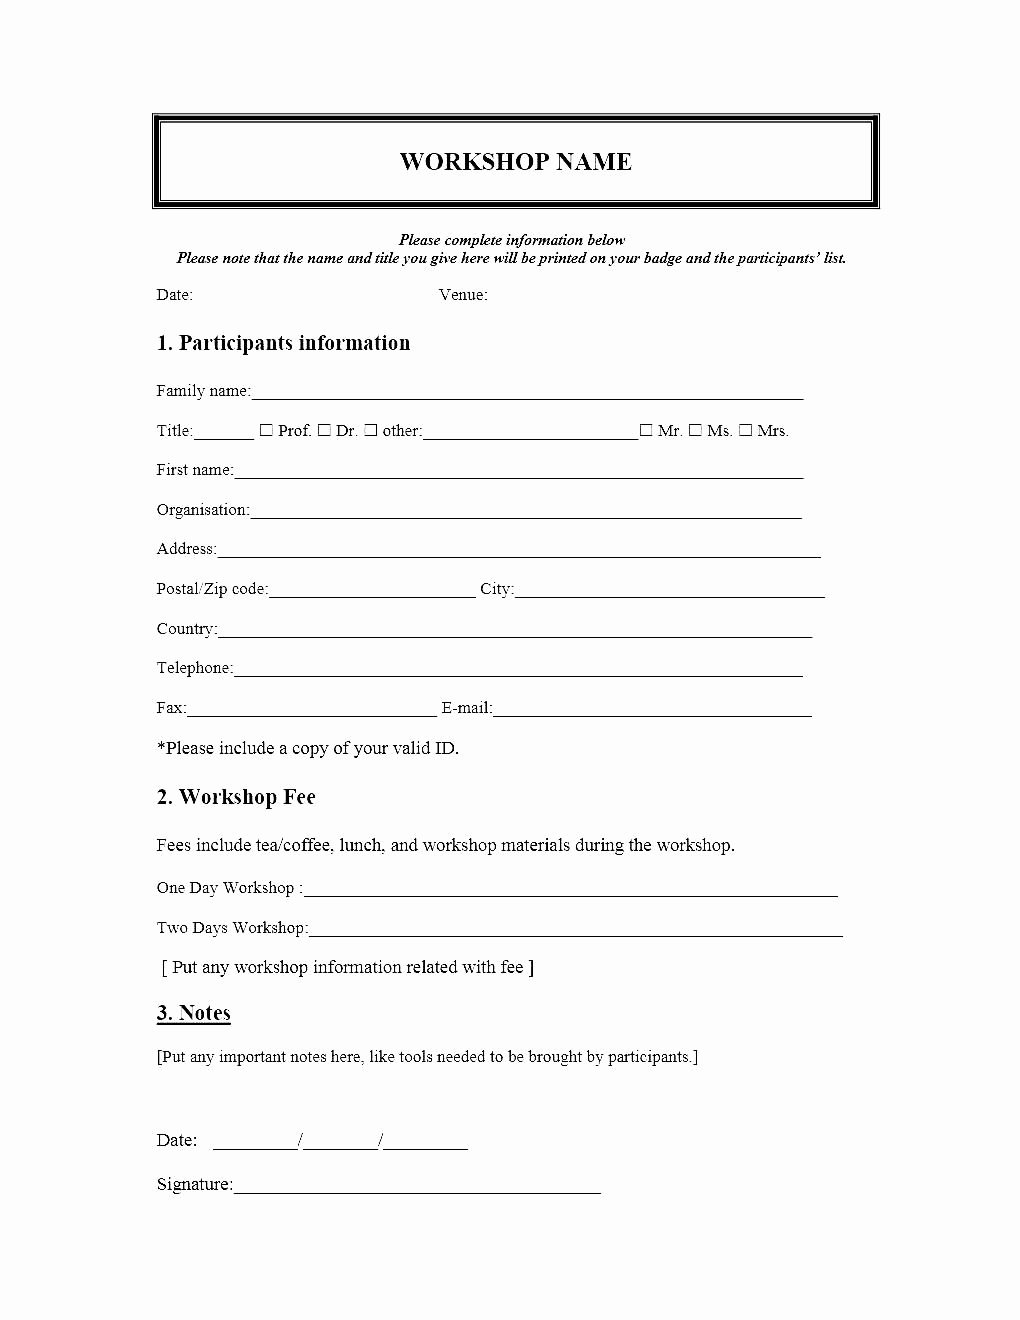 Registration forms Template Word New event Registration form Template Microsoft Word